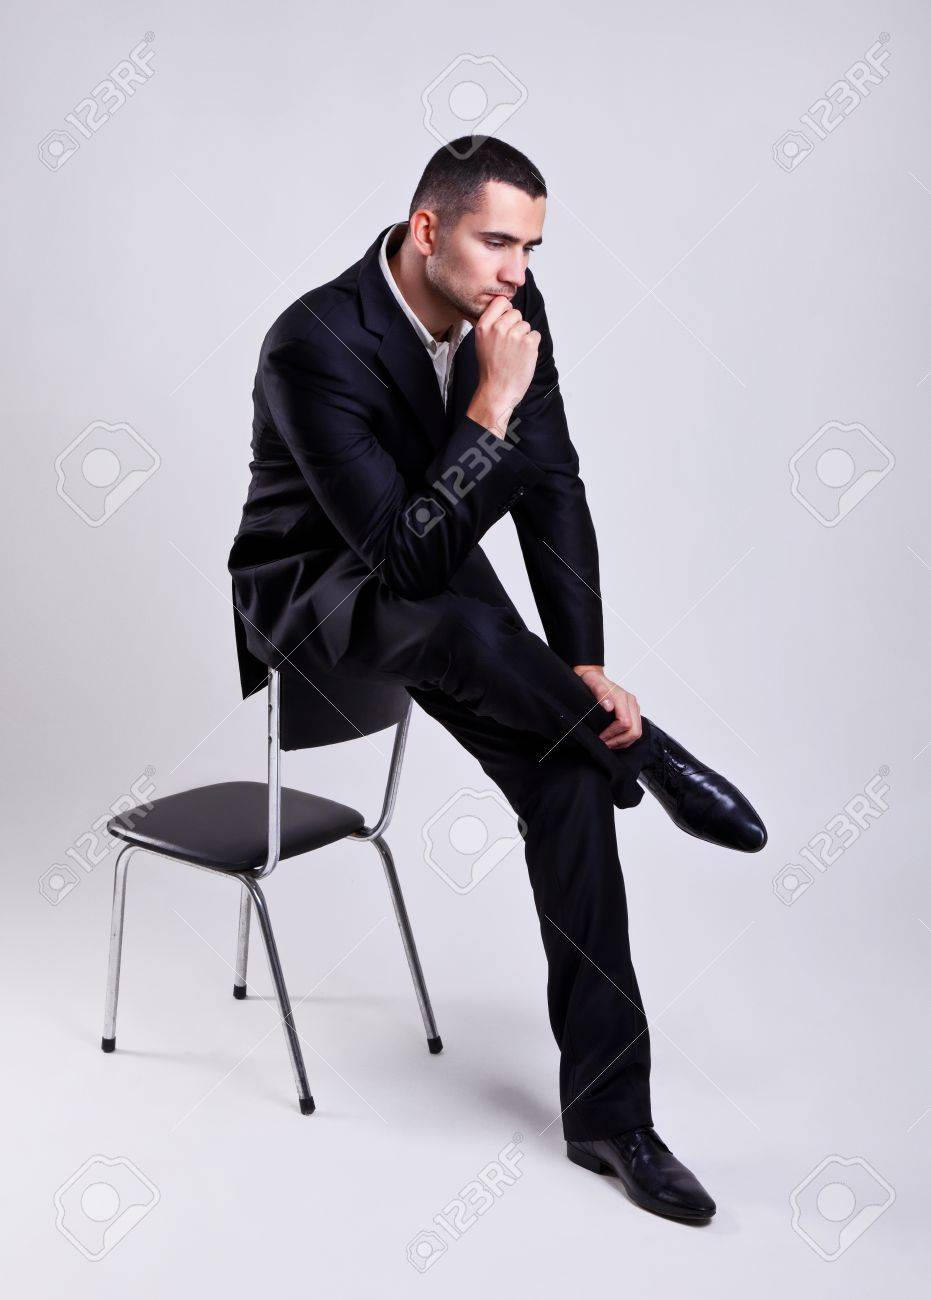 elegant young businessman sitting on a chair and thinking over